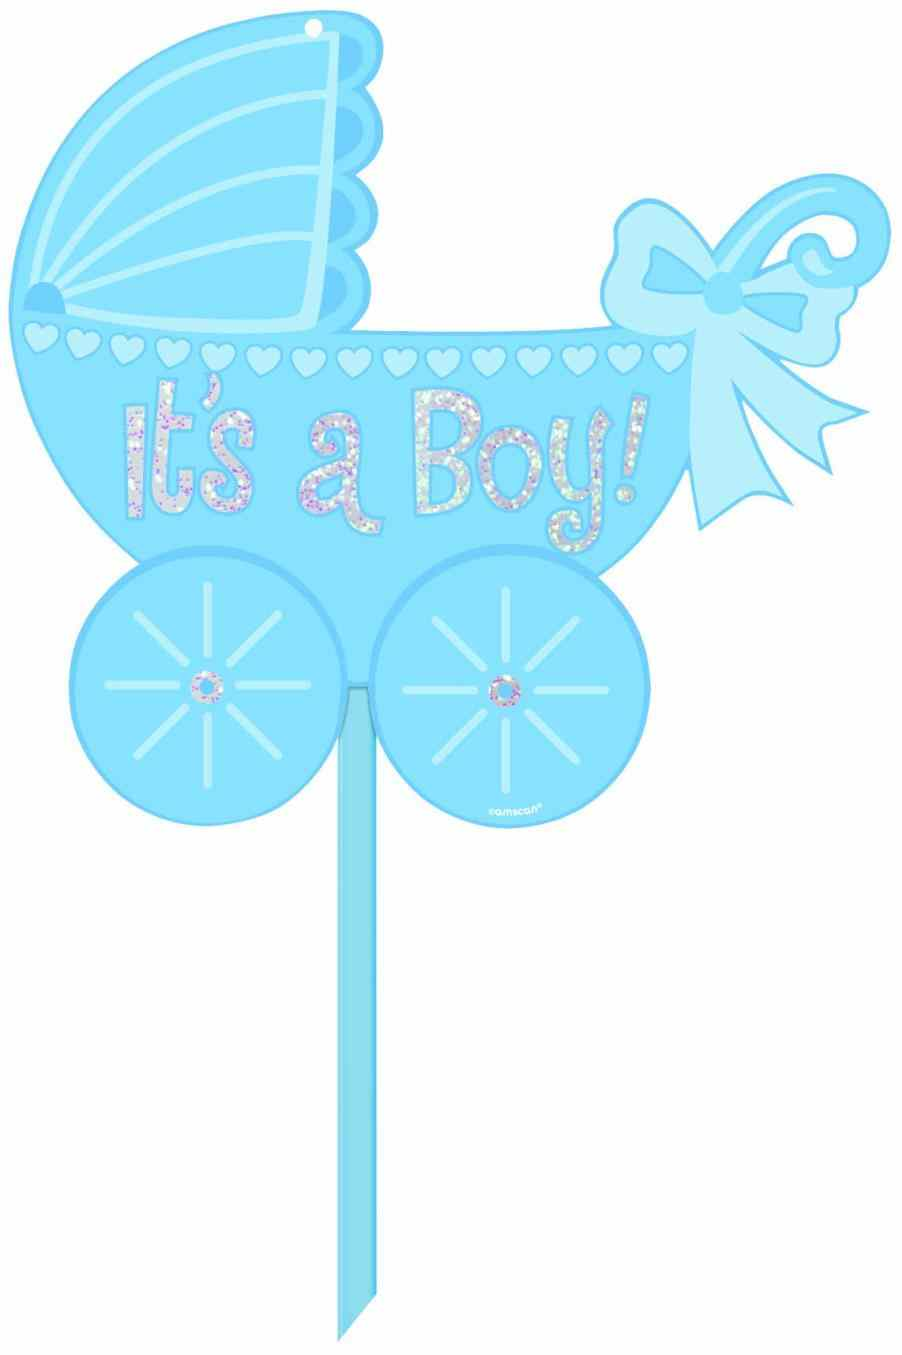 902x1355 Free Download Clip Art Photo Price Is Image Photo Baby Shower